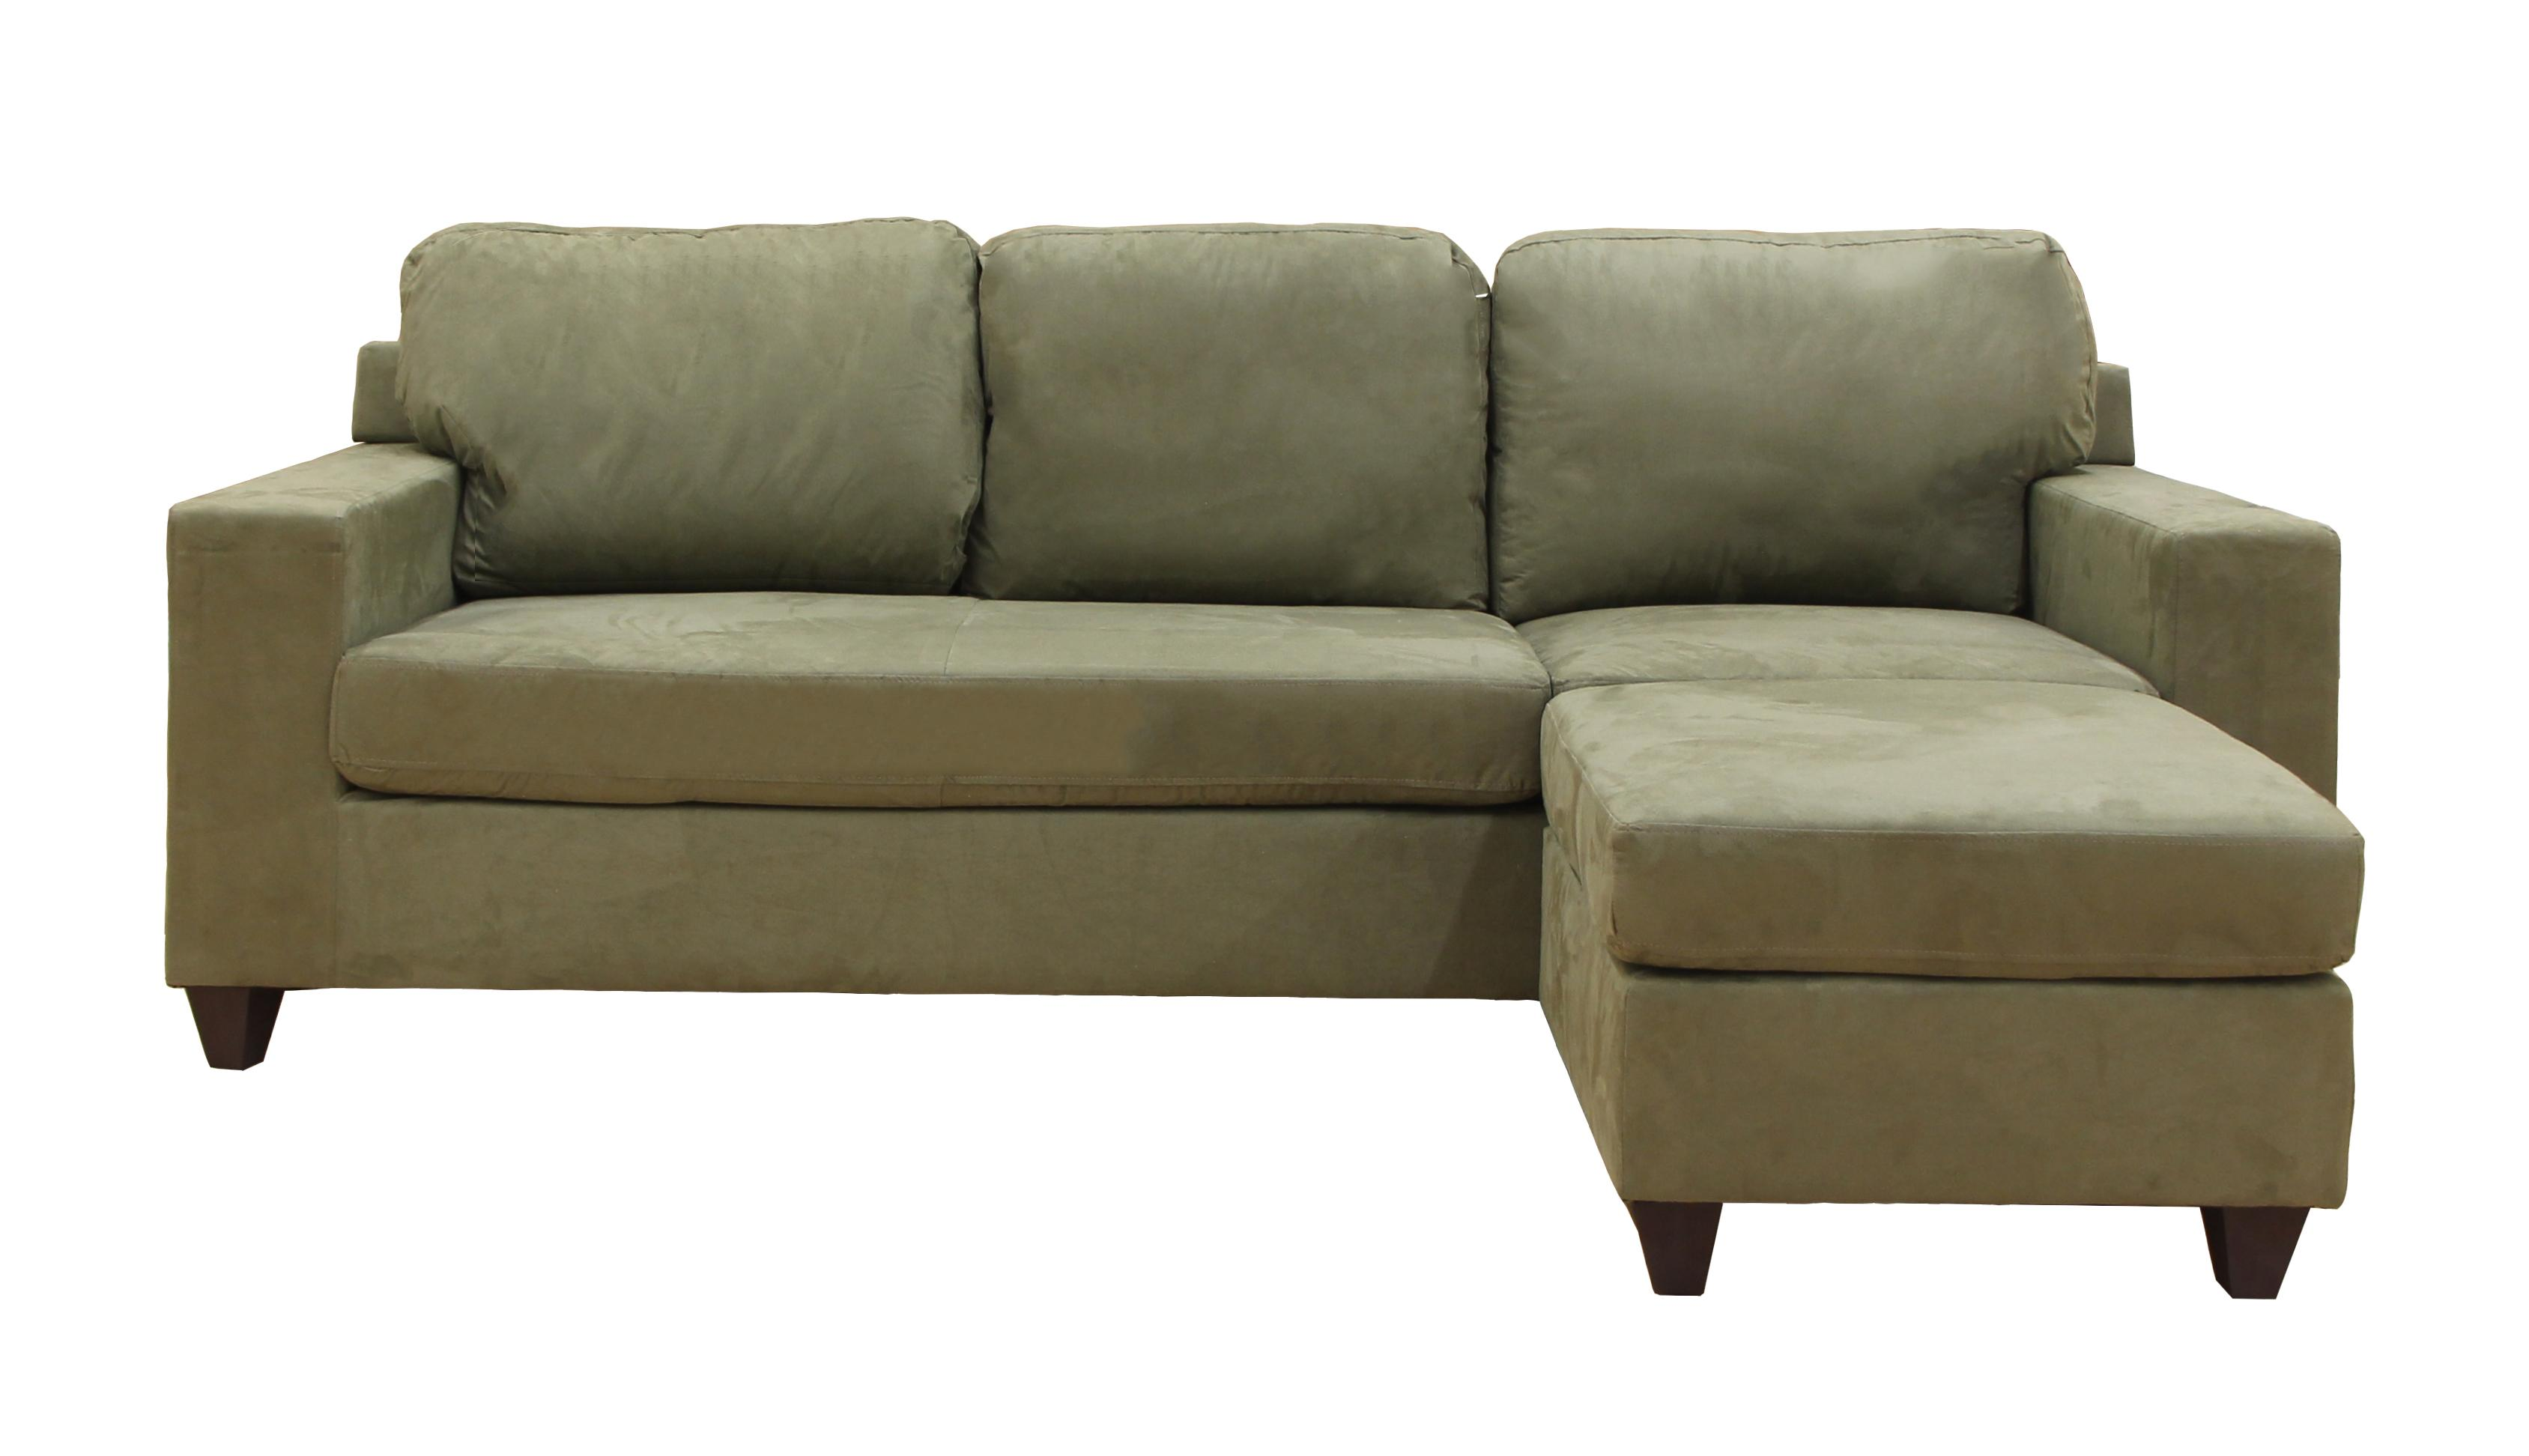 Incredible Acme Furniture Vogue Sage Reversible Chaise Sectional The Bralicious Painted Fabric Chair Ideas Braliciousco